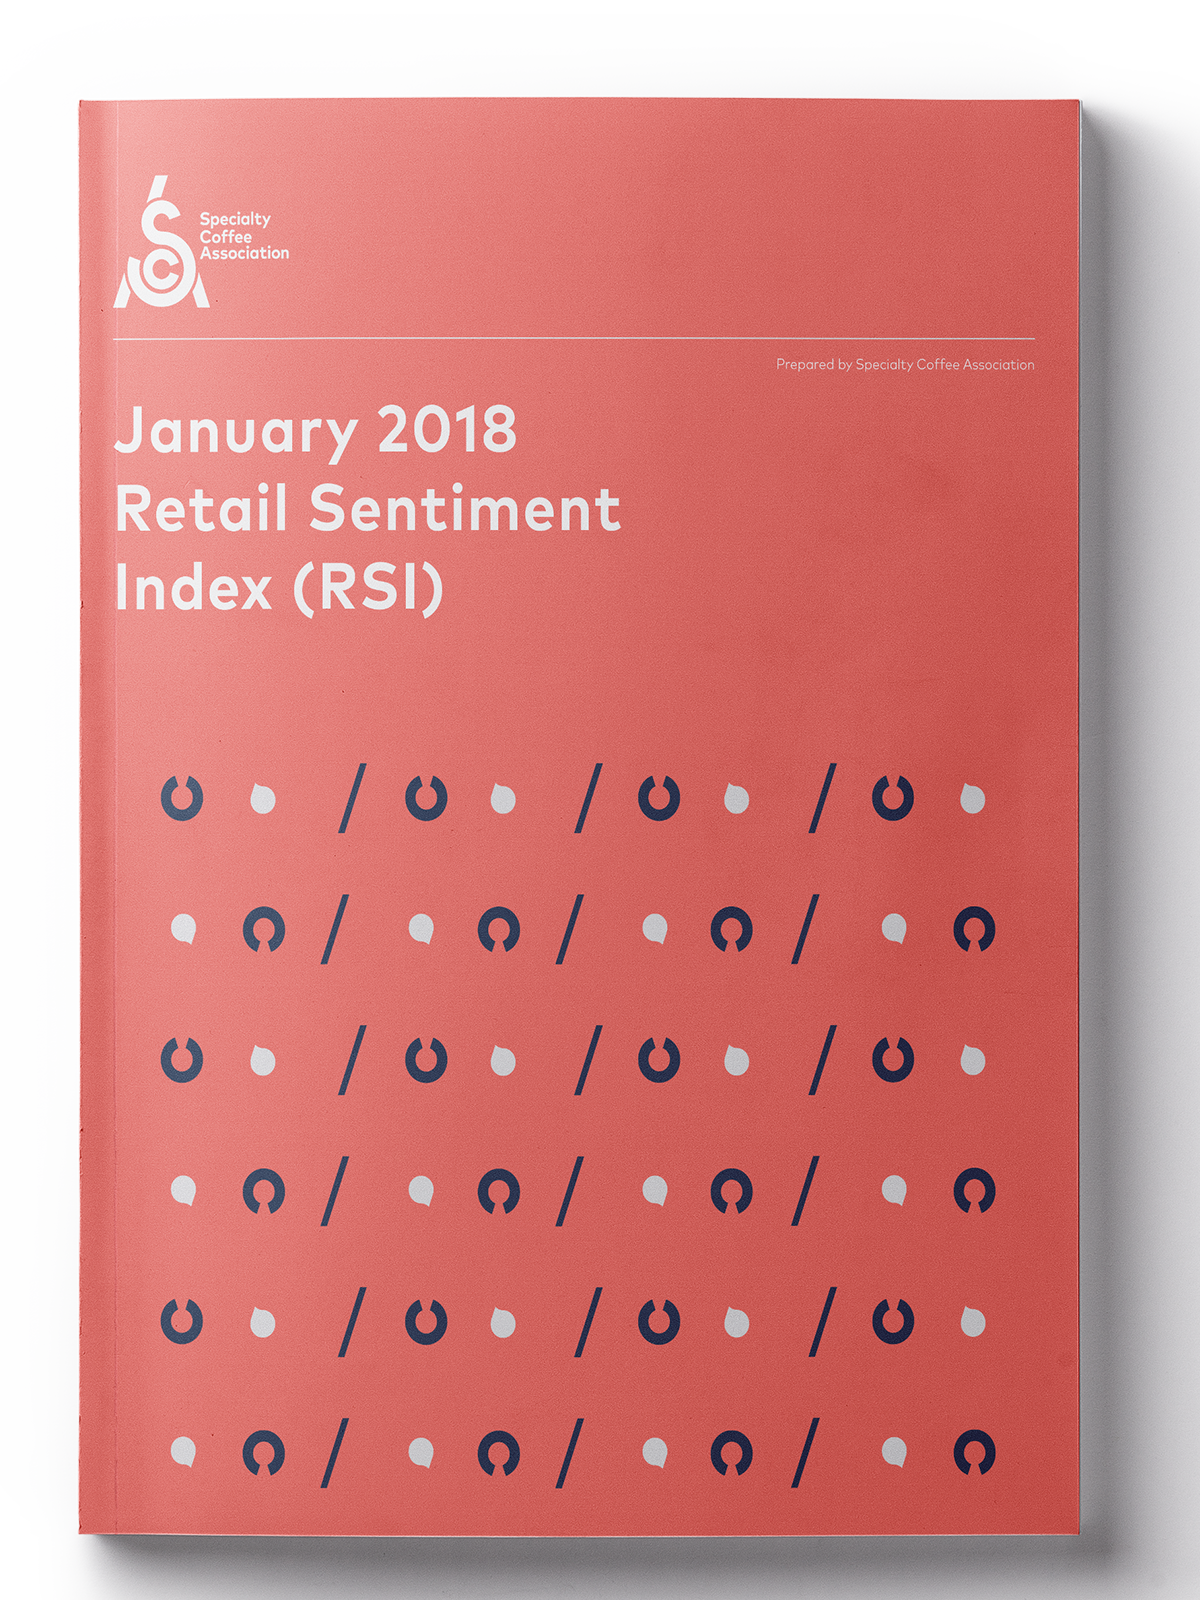 Specialty Coffee Retail Sentiment Index (RSI)   SCA has developed this economic index, measuring the specialty coffee industry's degree of optimism at the retail level. The RSI will be used as a metric in assessing and forecasting coffee's vigor in the retail sector. Available from 2015 forward.   Member Access   Buy Now